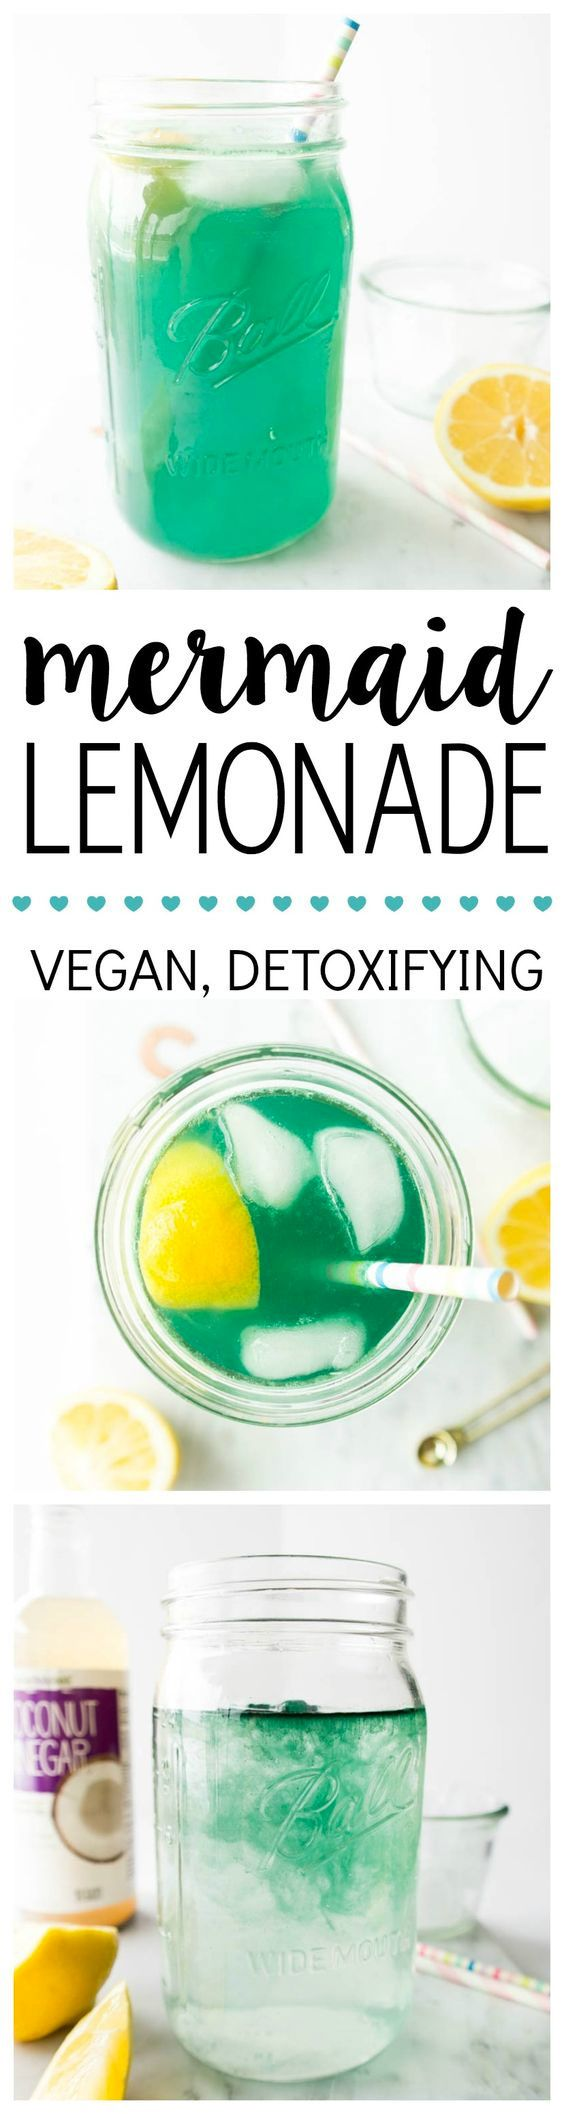 Mermaid Lemonade - Summer's Best Detox